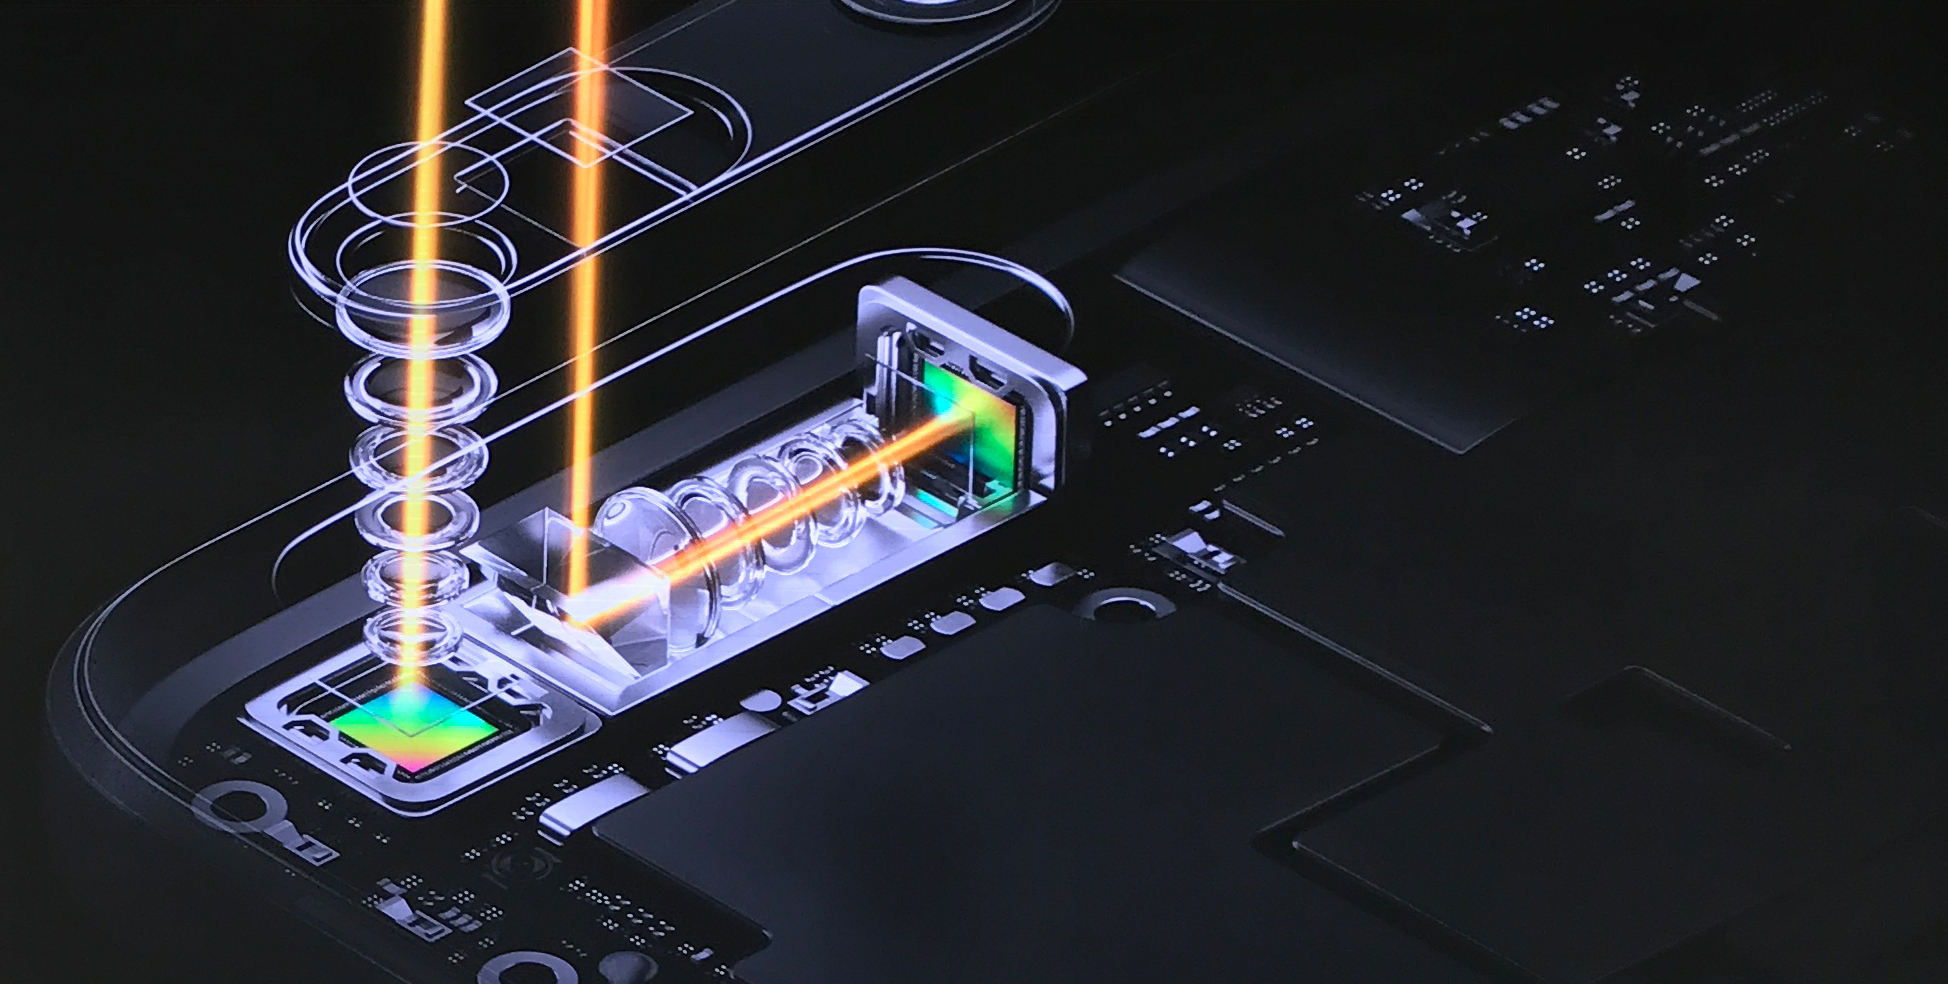 mwc 2017 oppo demonstrates 5x optical zoom for smartphones